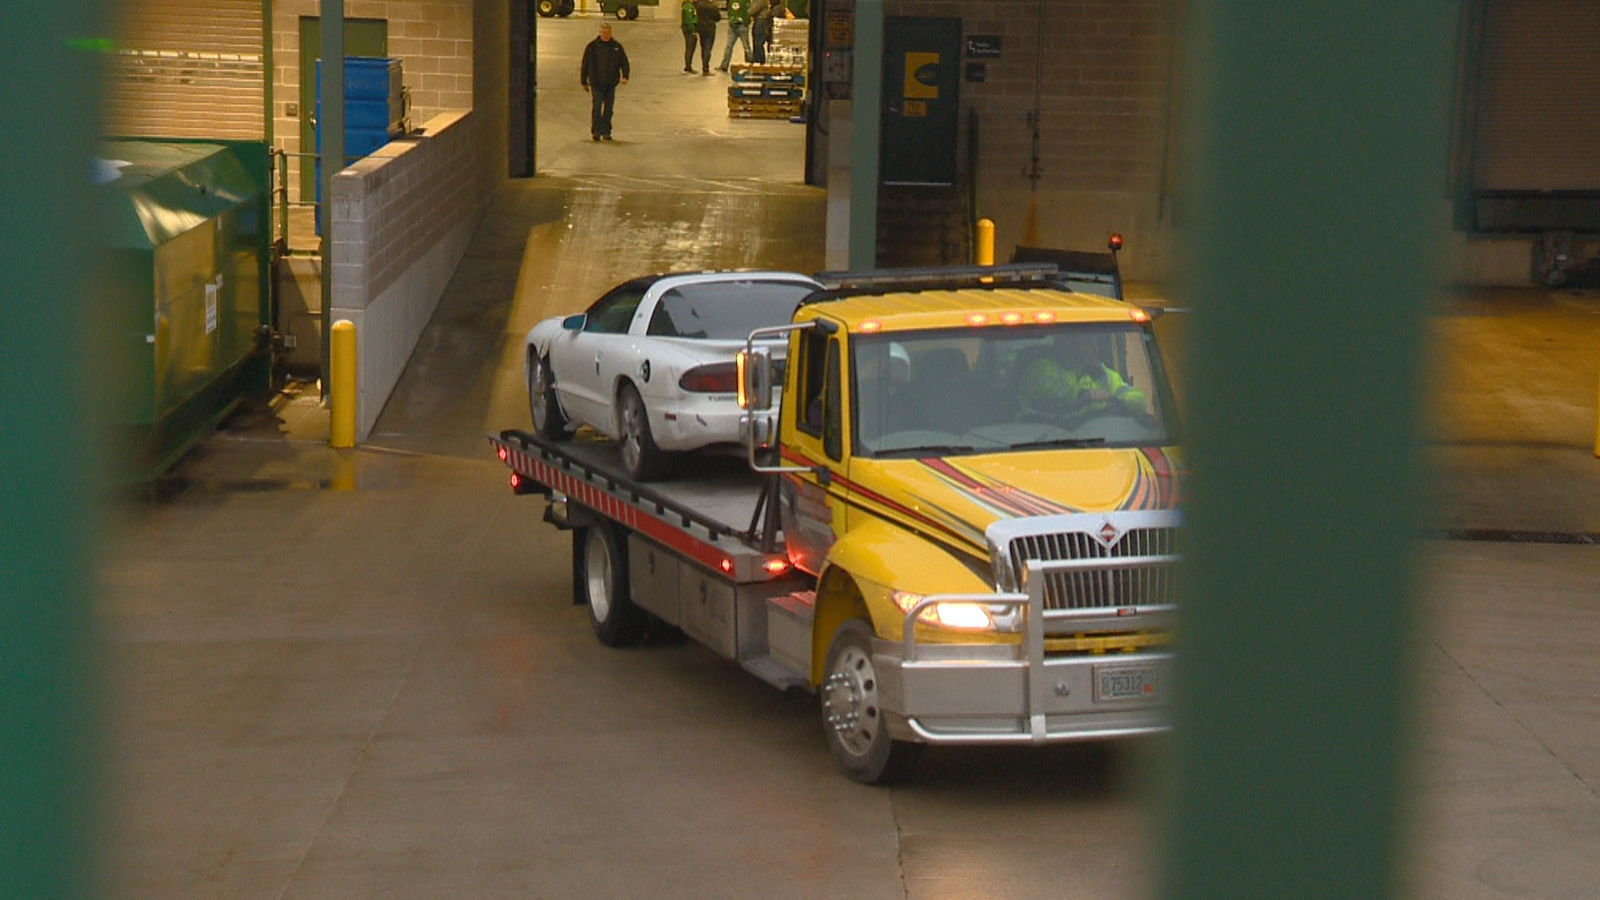 A tow truck hauls away a car that crashed into the loading dock area of Lambeau Field, December 22, 2017. (WLUK)<p></p>